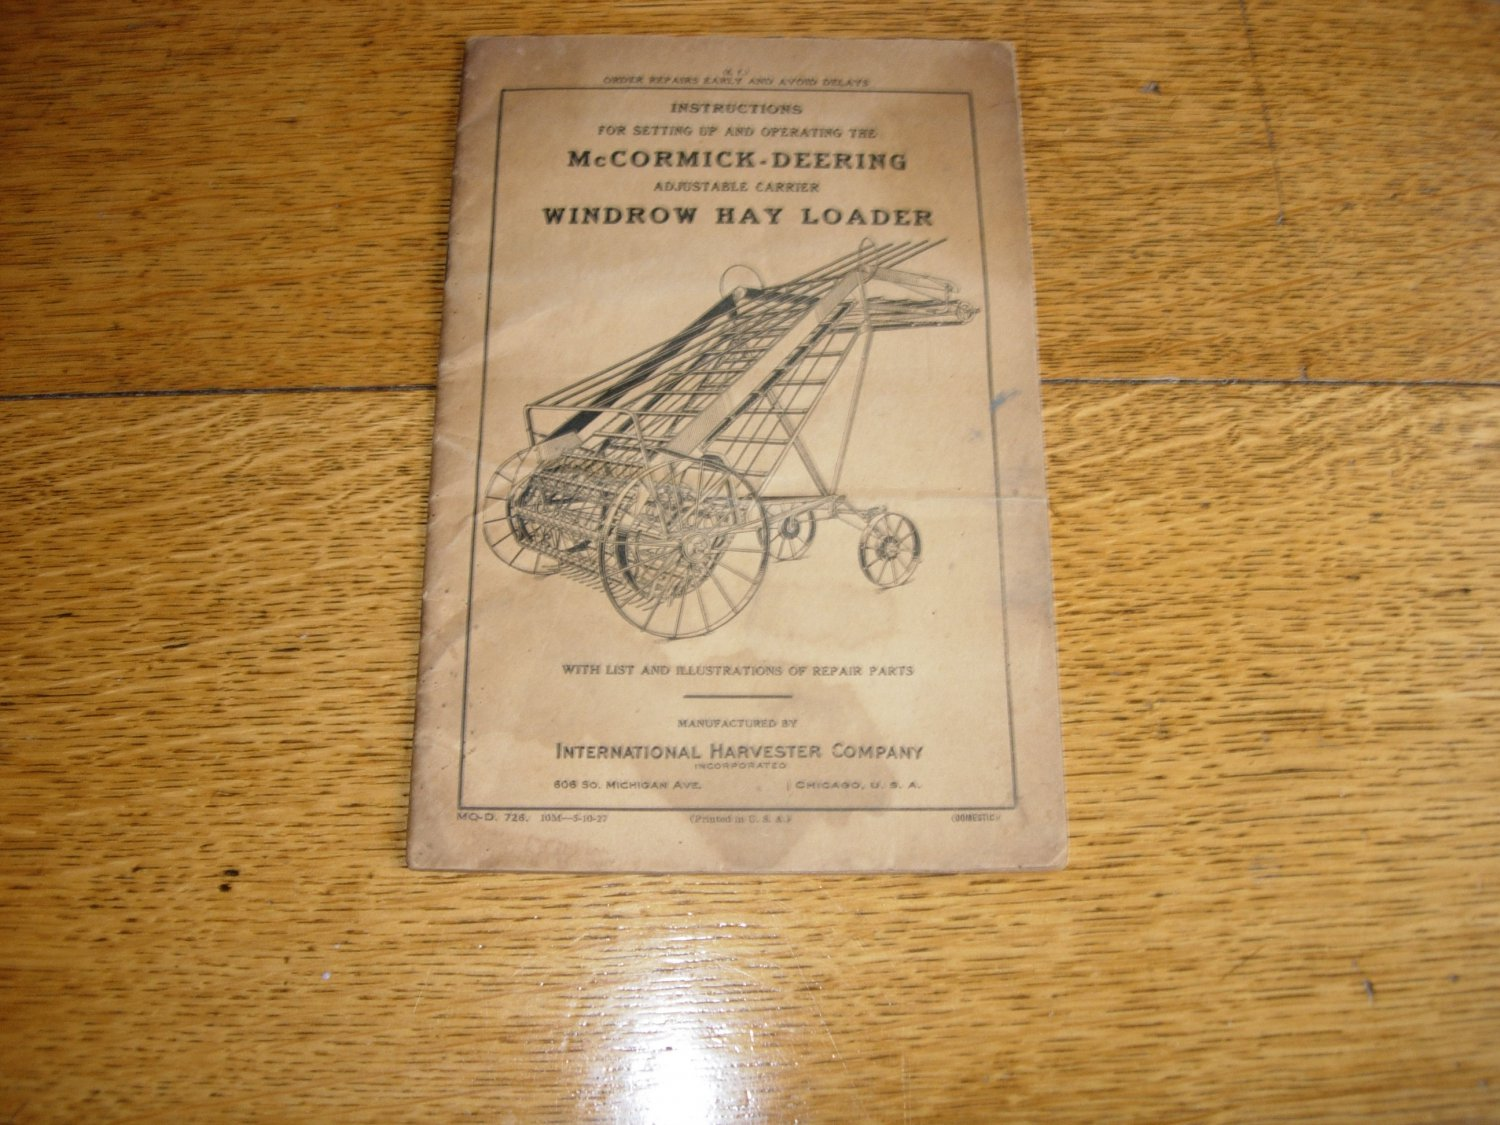 McCormick-Deering Windrow Hay Loader Set Up and Operation Manual